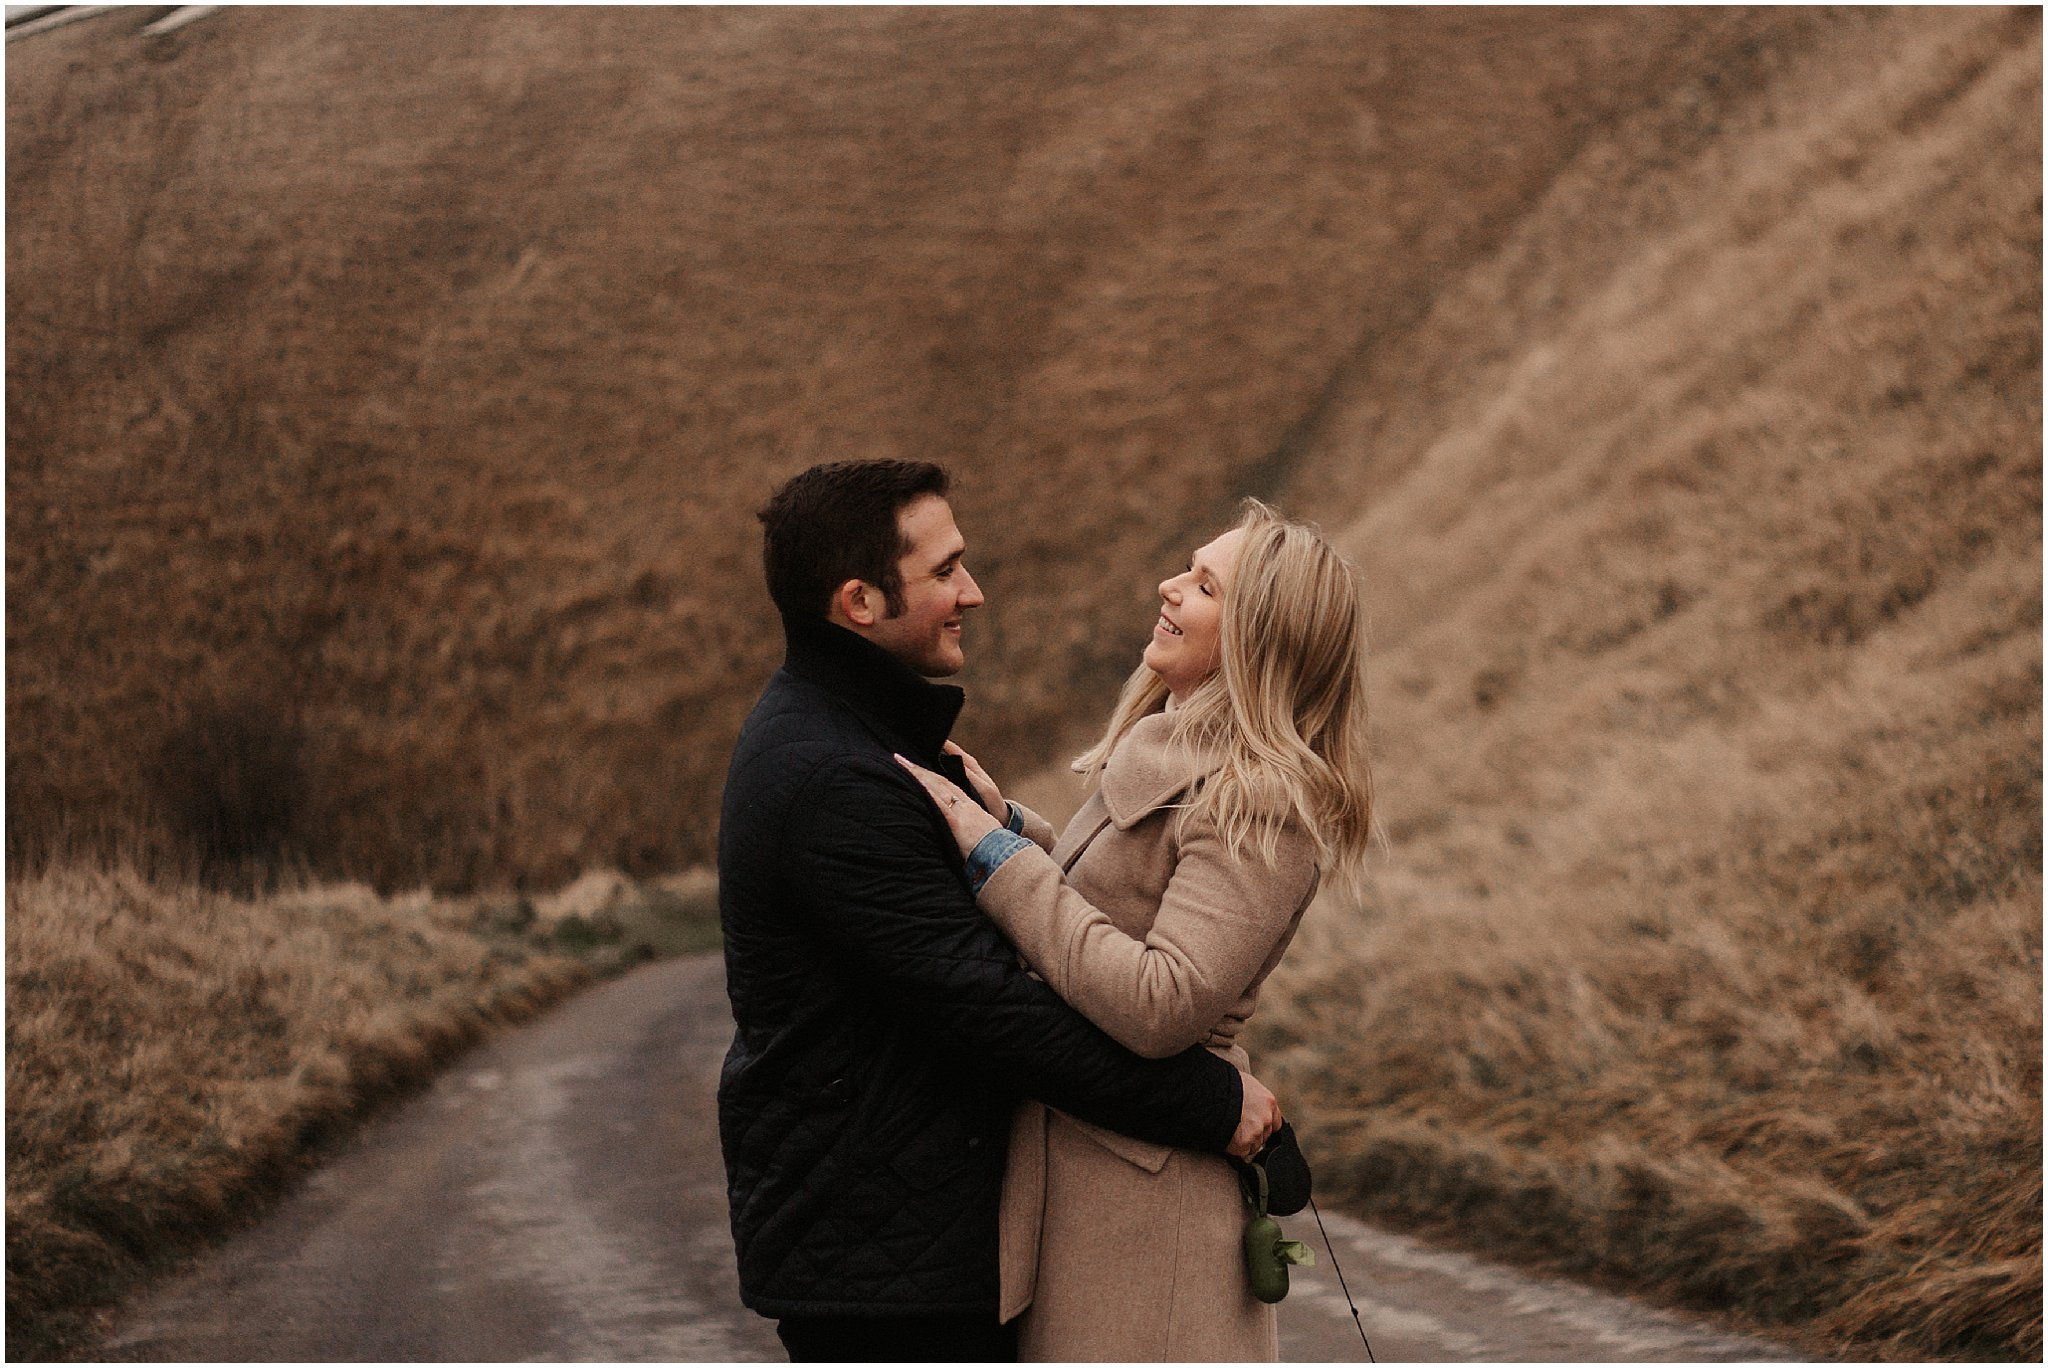 Mike & Charley_s Winter Engagement Shoot Wiltshire-49.jpg